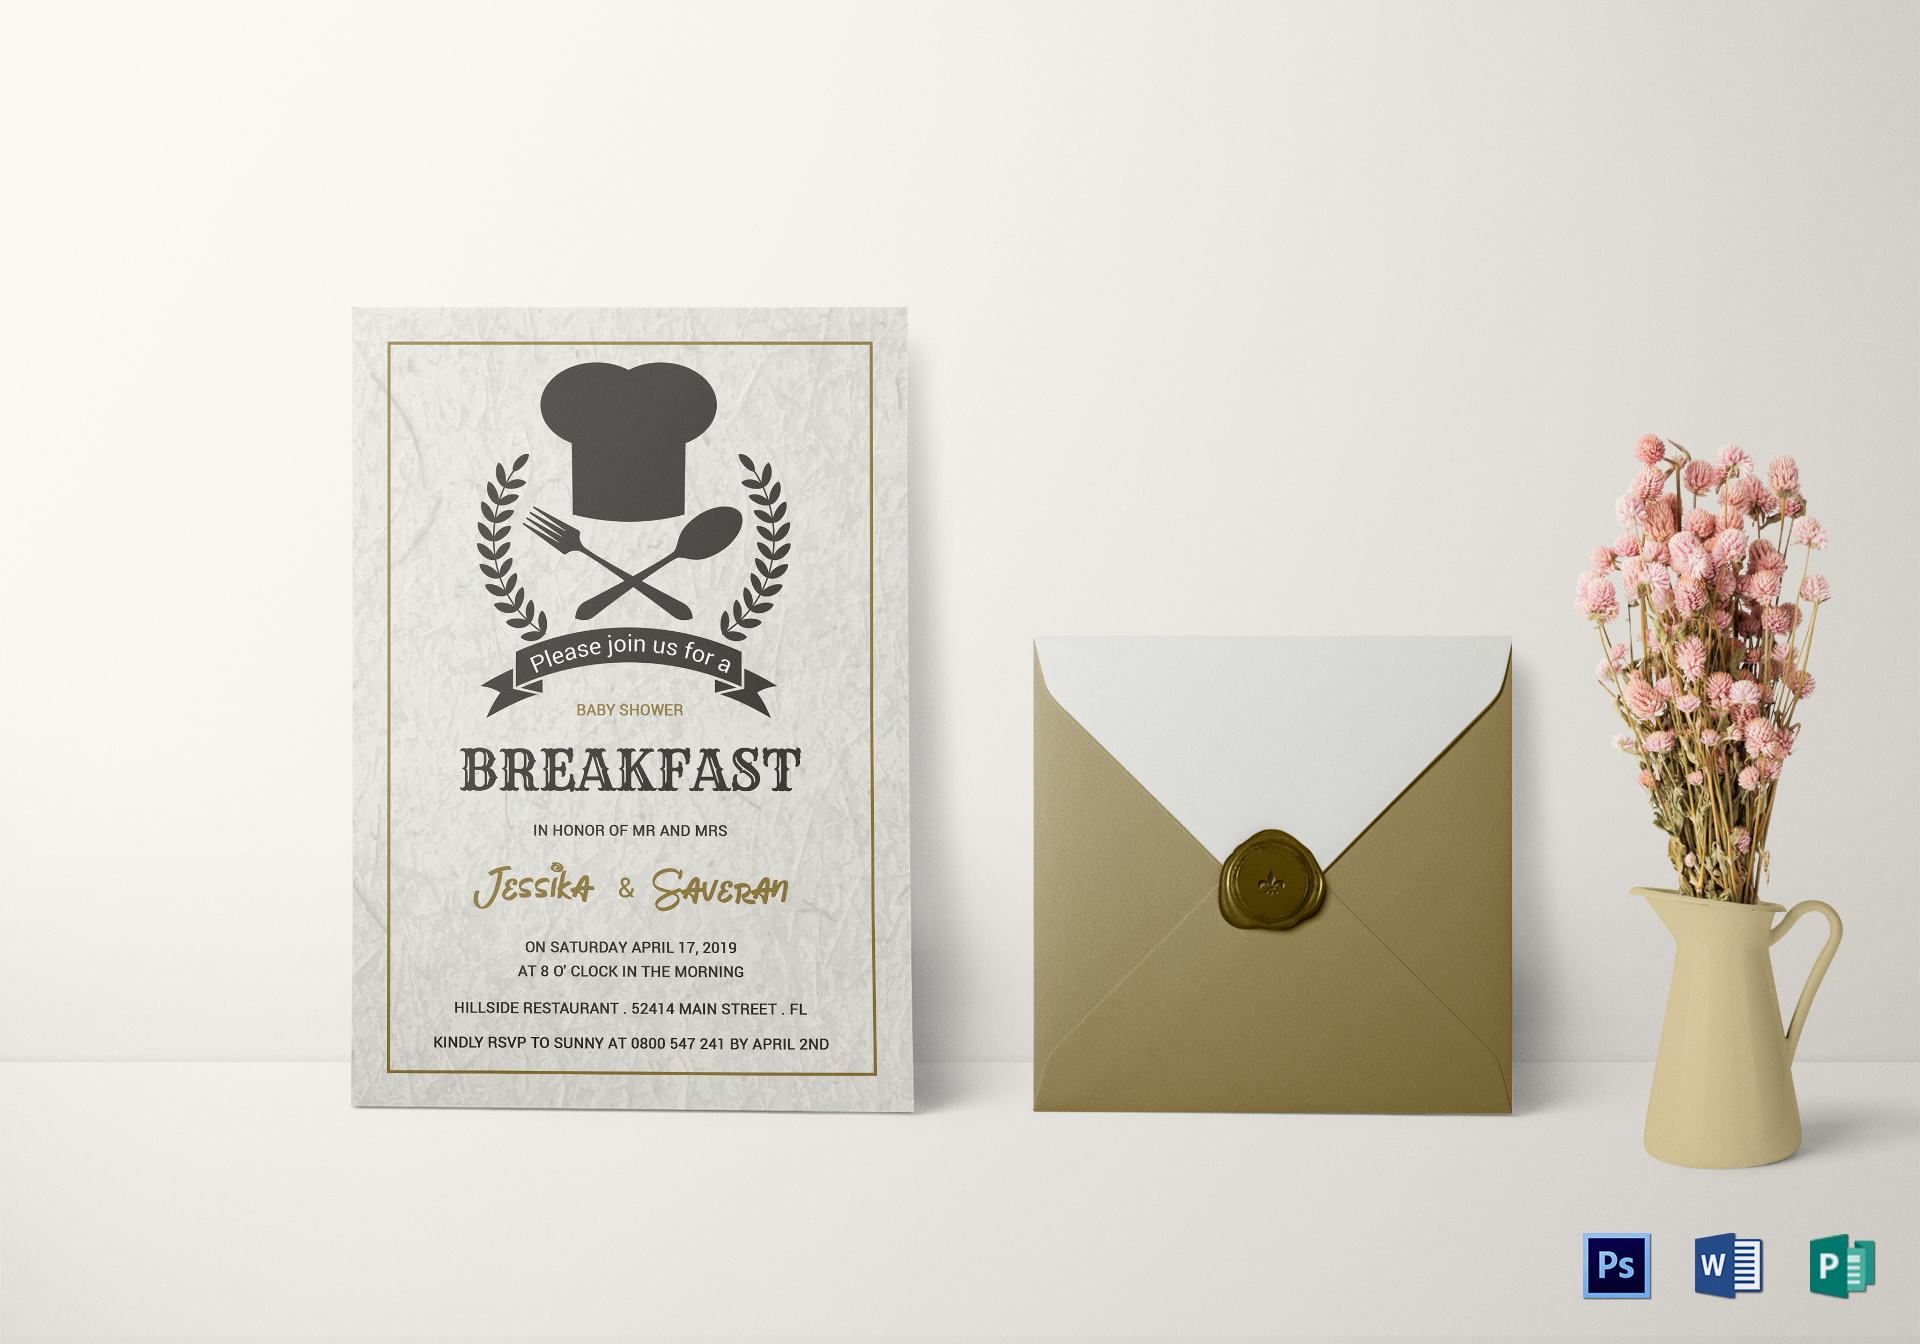 baby shower breakfast invitation design template in word psd publisher